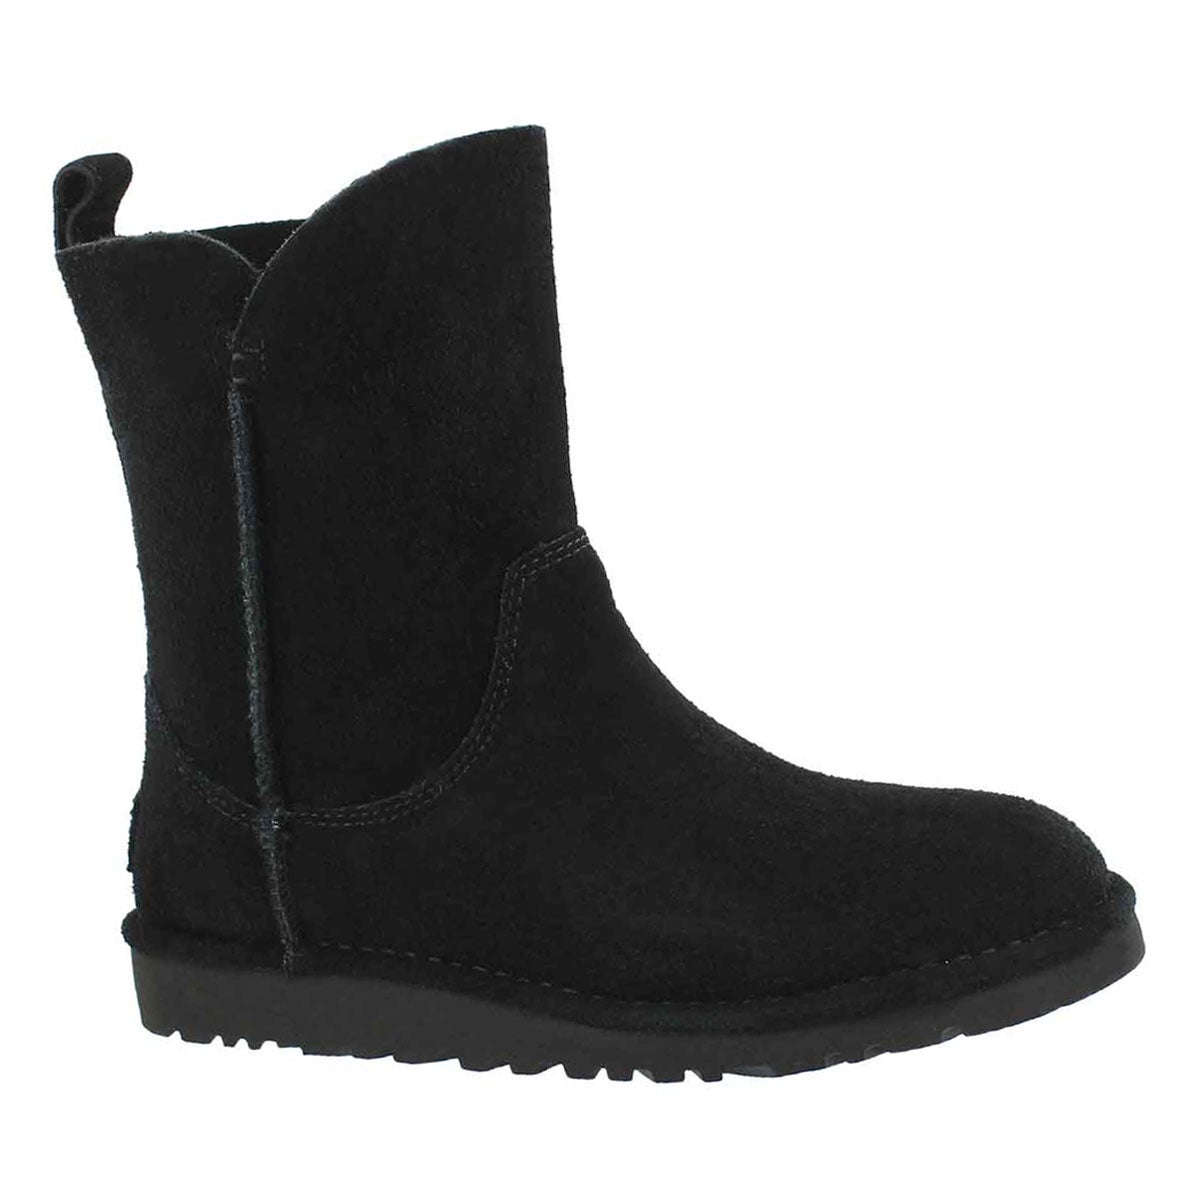 Lds Alida blk sheepskin boot